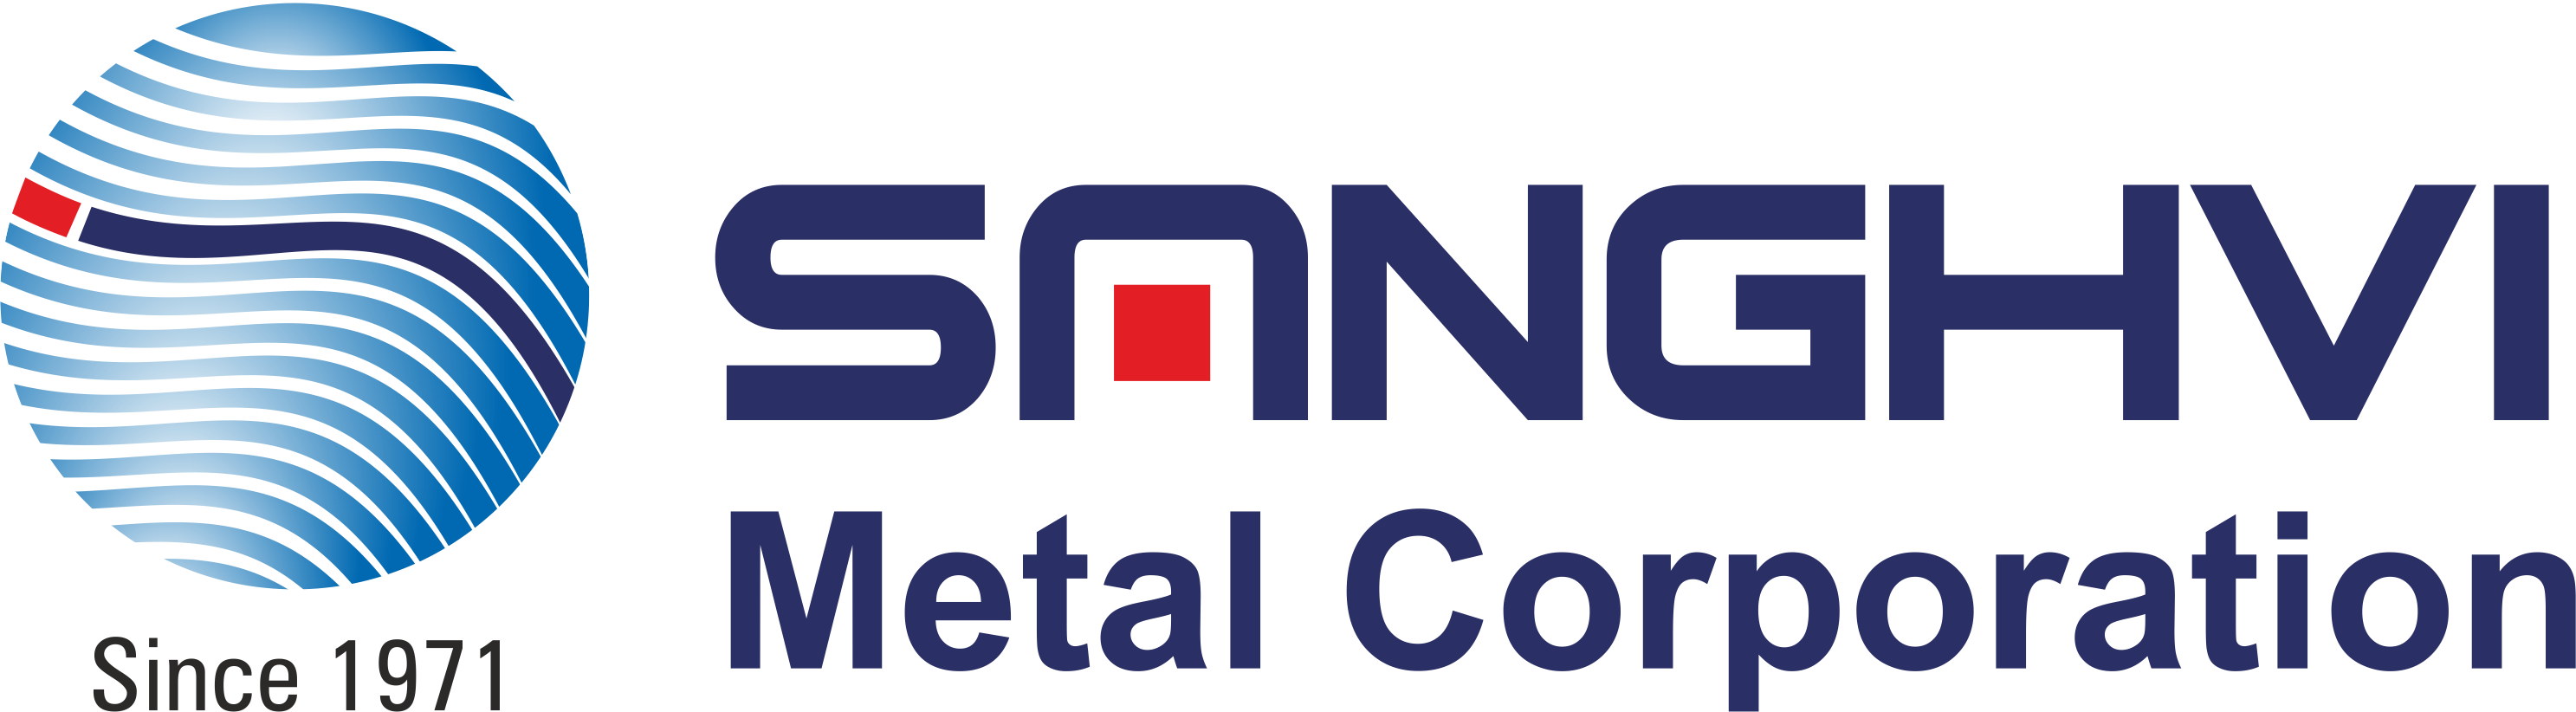 sanghvi-metal-corporation